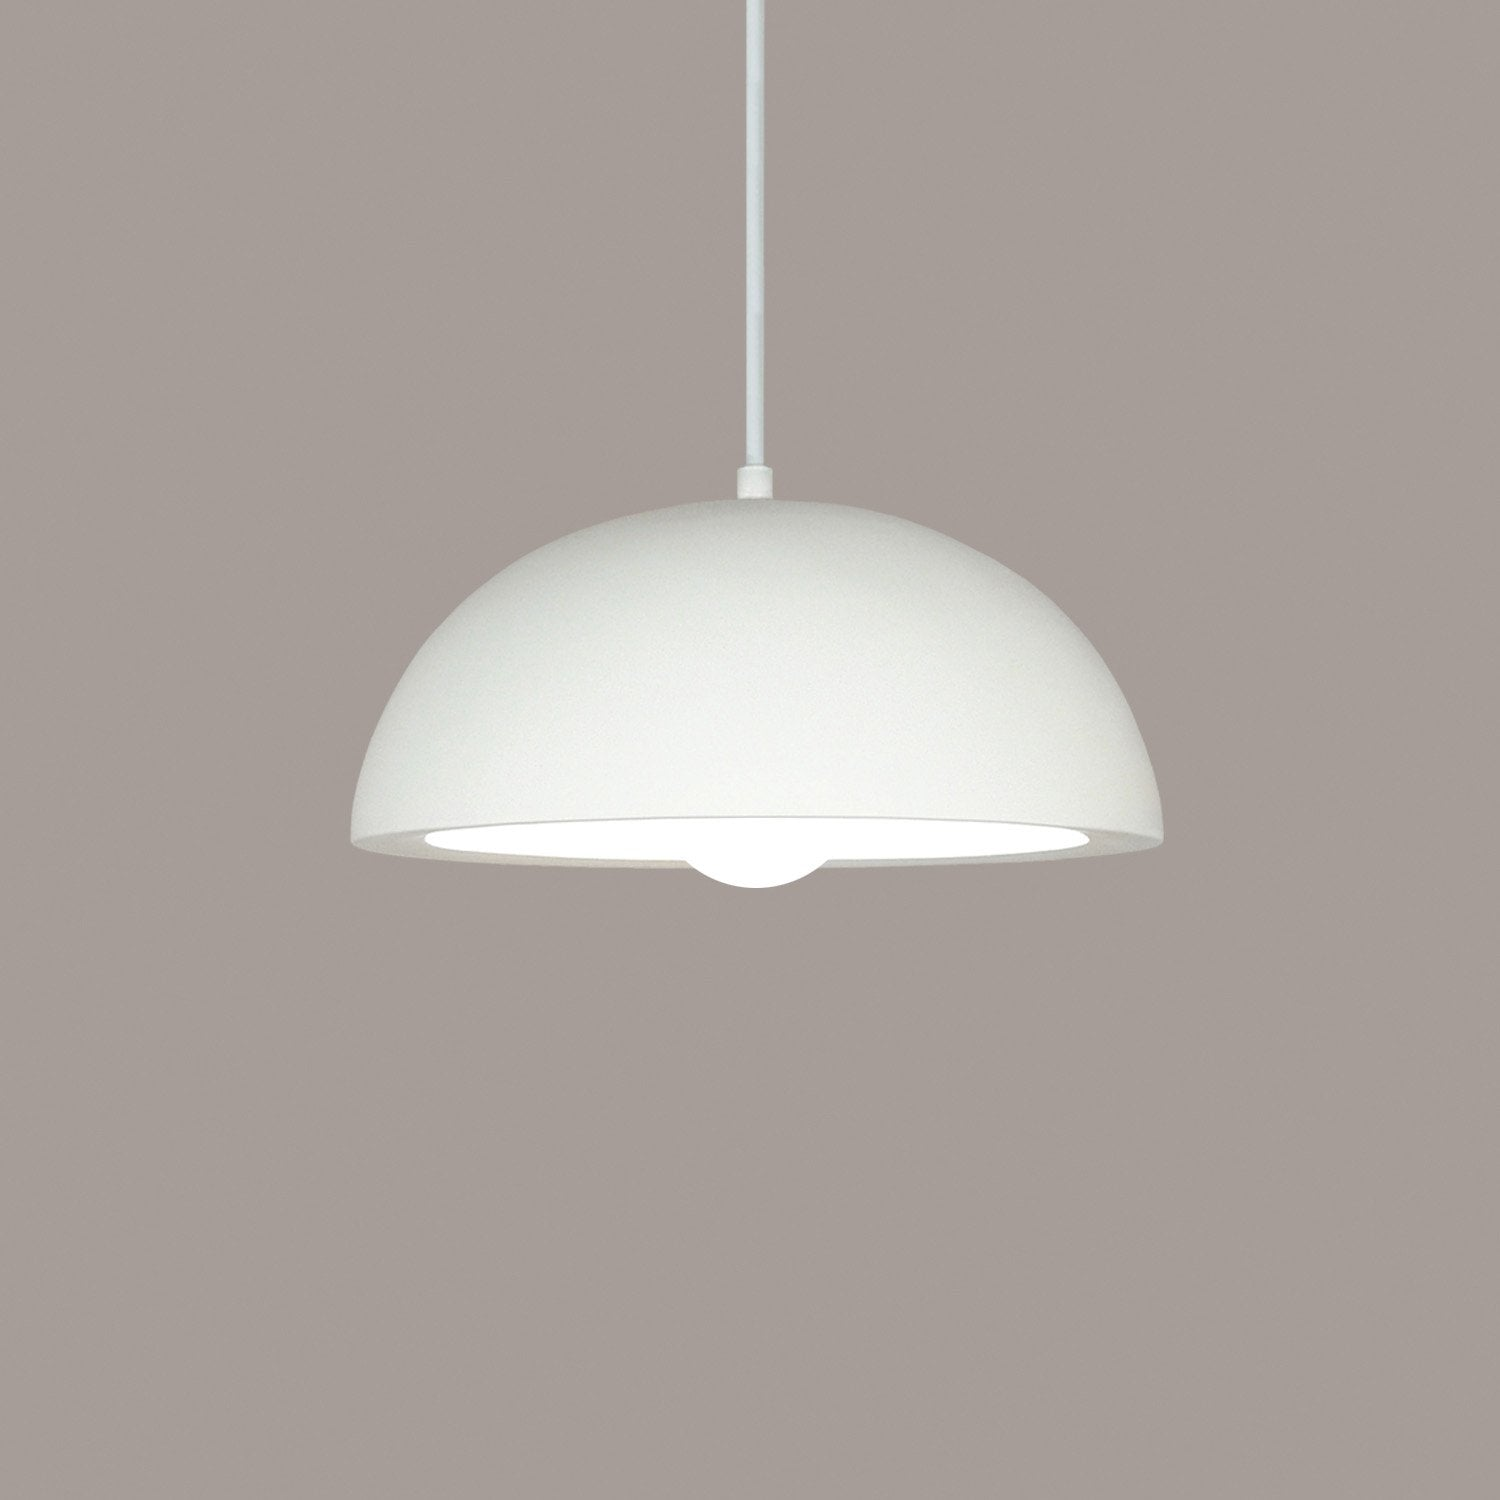 A19 P301-GU24-PS-BCC Islands of Light Collection Thera Pistachio Finish Pendant